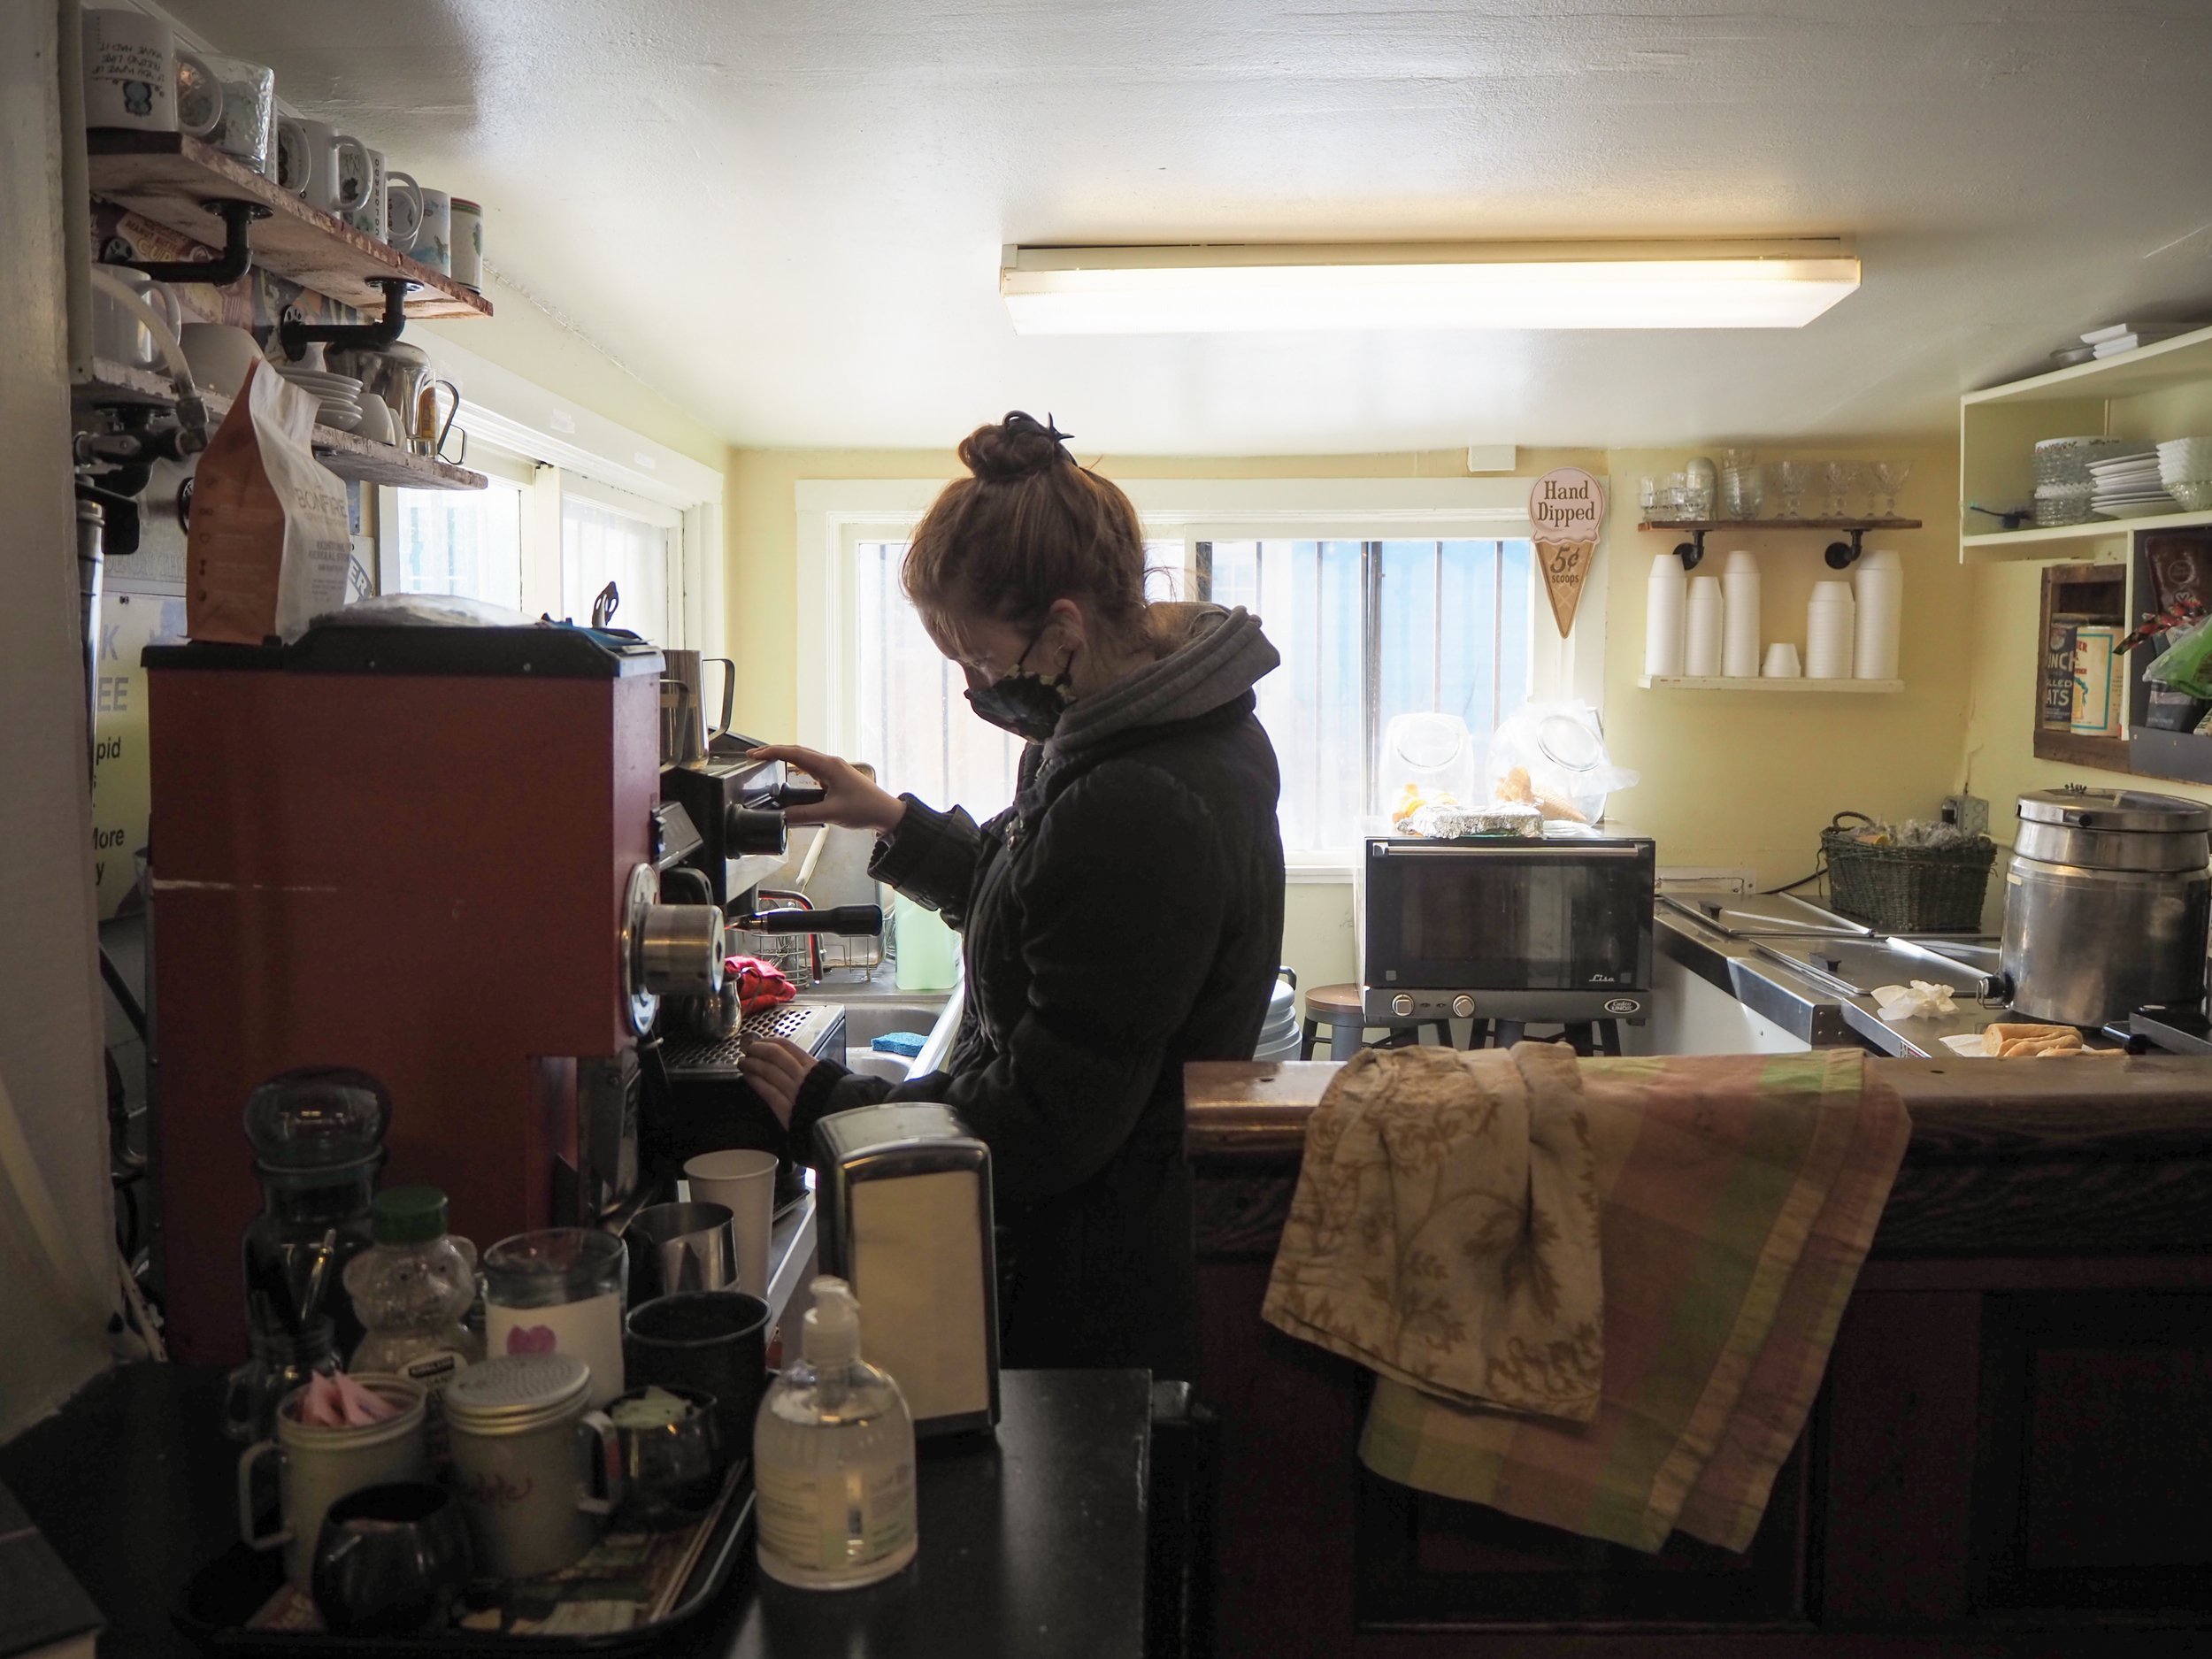 The Redstone General Store is now open and offering 10 flavors of Colorado ice cream. Annalise Basso prepares espresso to accompany a brisk afternoon. Photo by Raleigh Burleigh.